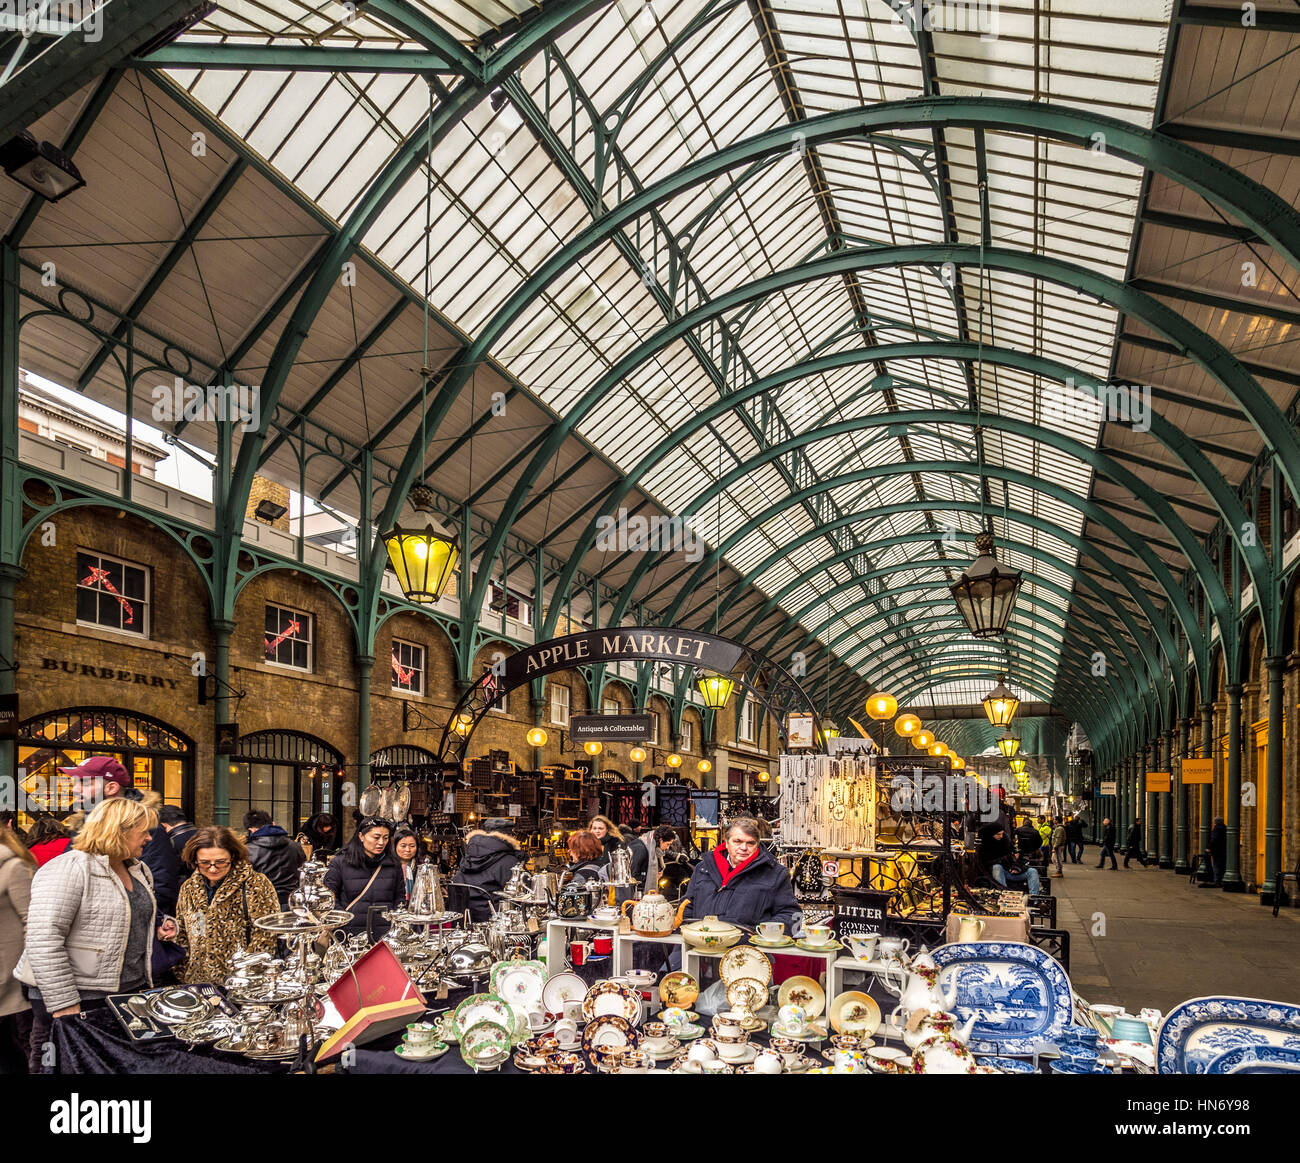 Apple Market traders in Covent Garden, London, UK Stock Photo ...